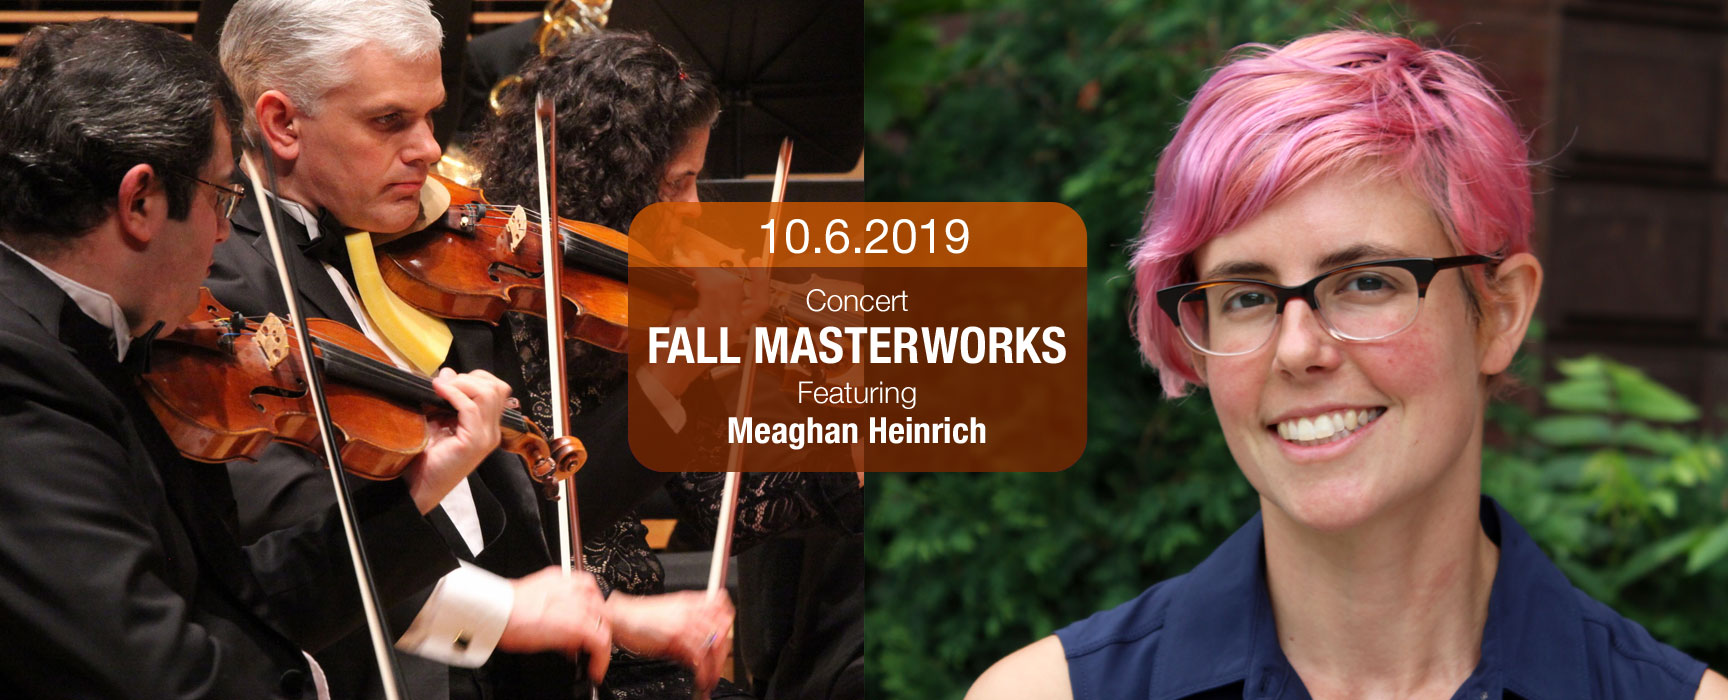 2019 fall masterworks with Meaghan Heinrich